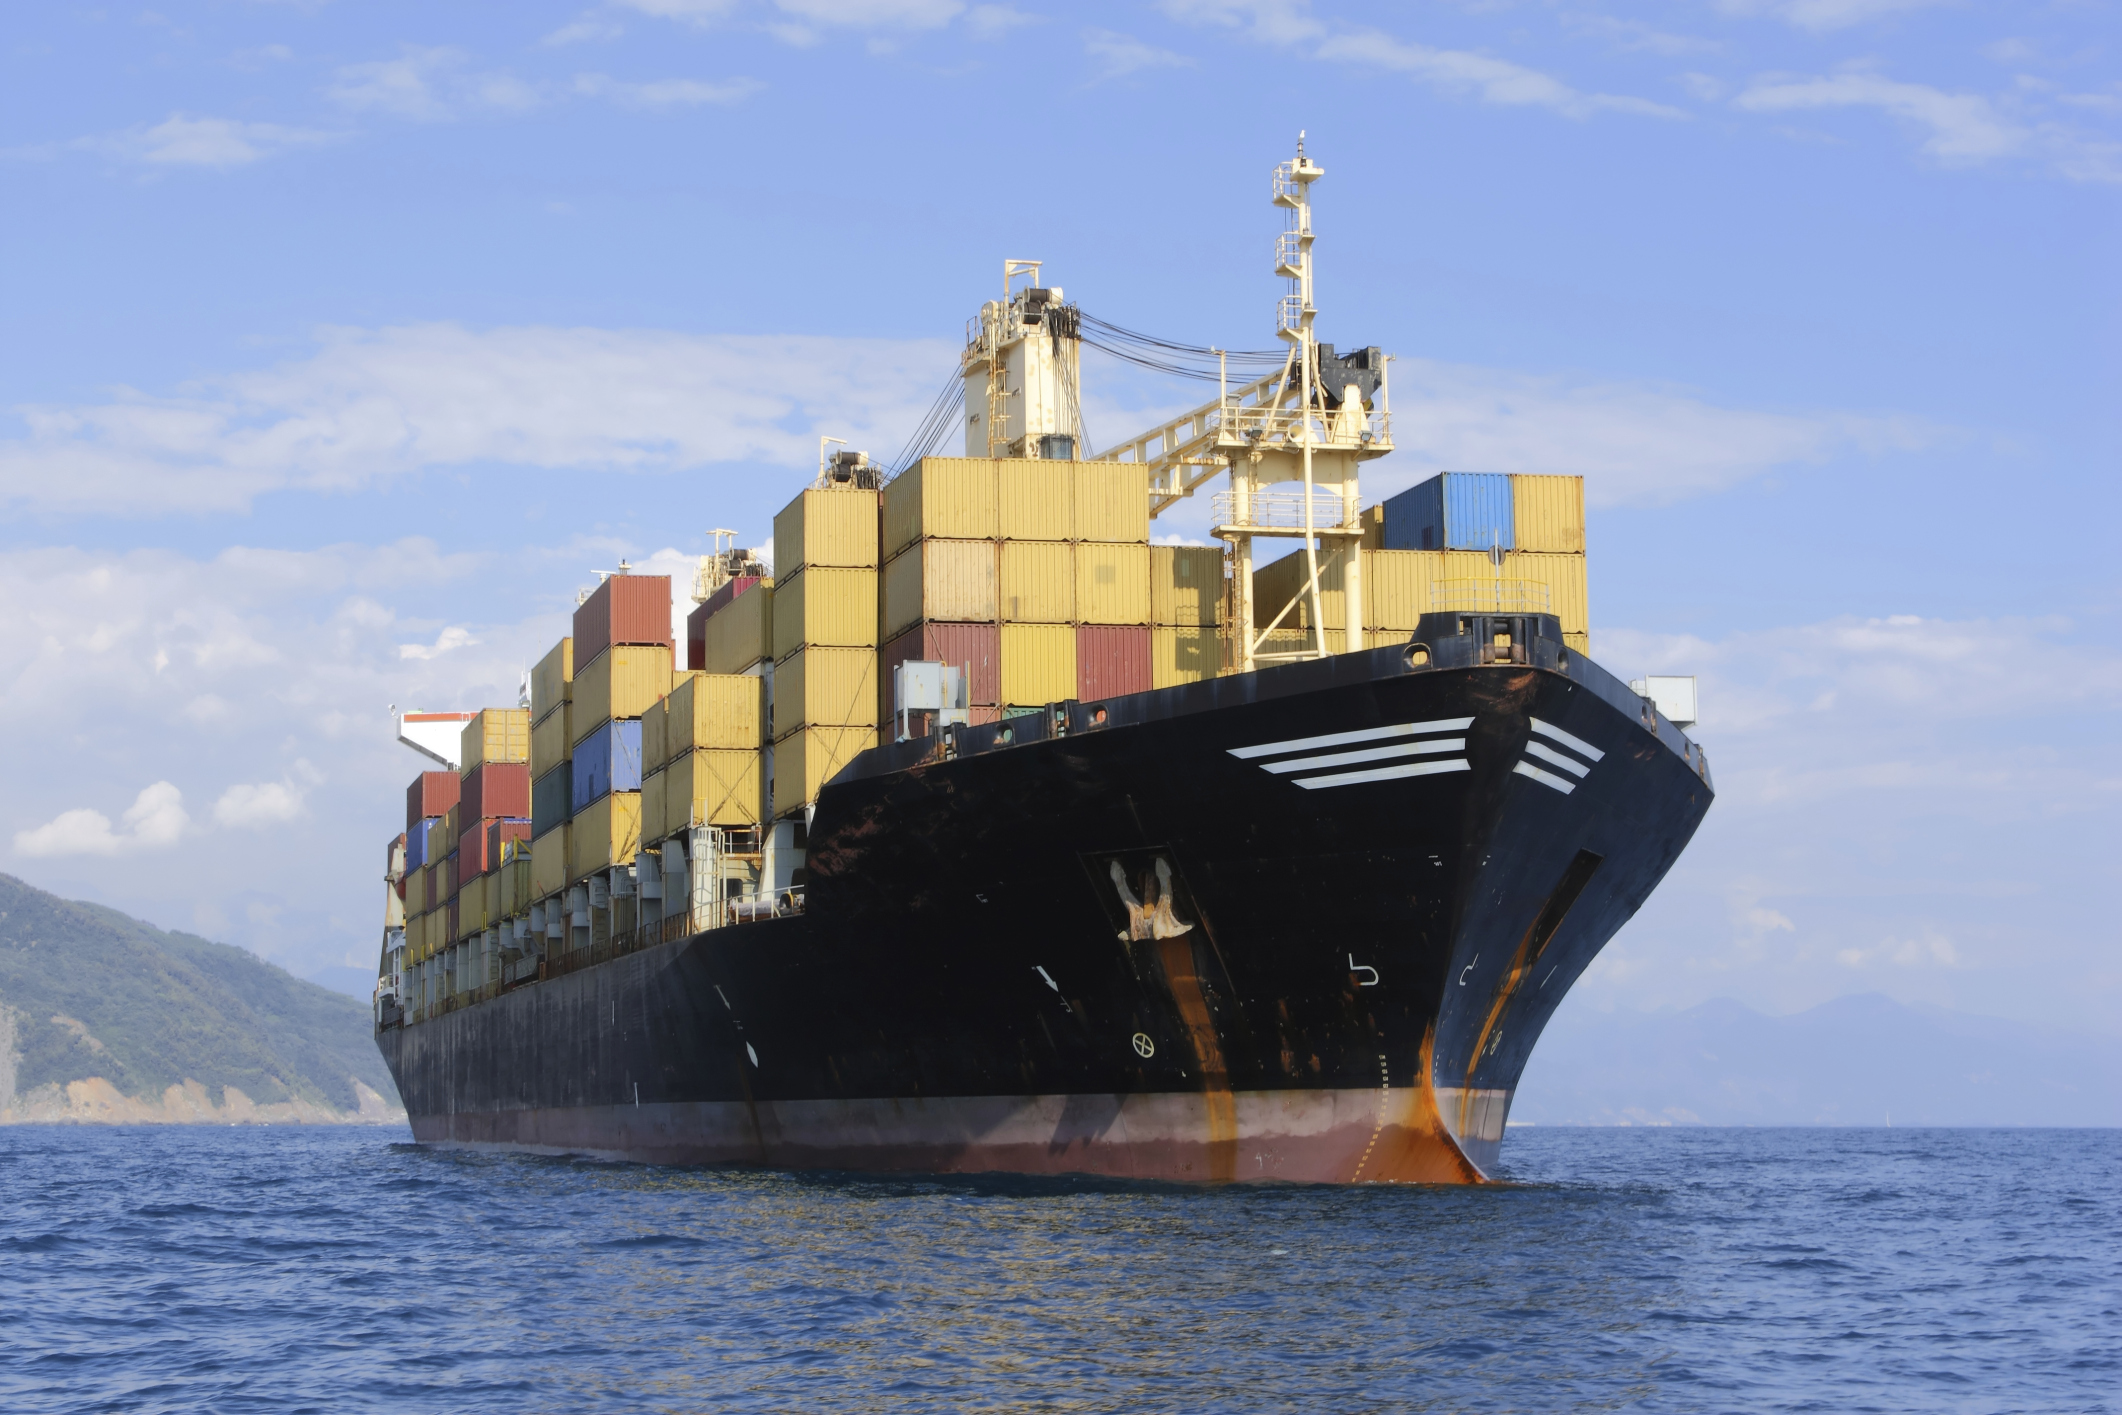 An Export Ship Loaded with Containers